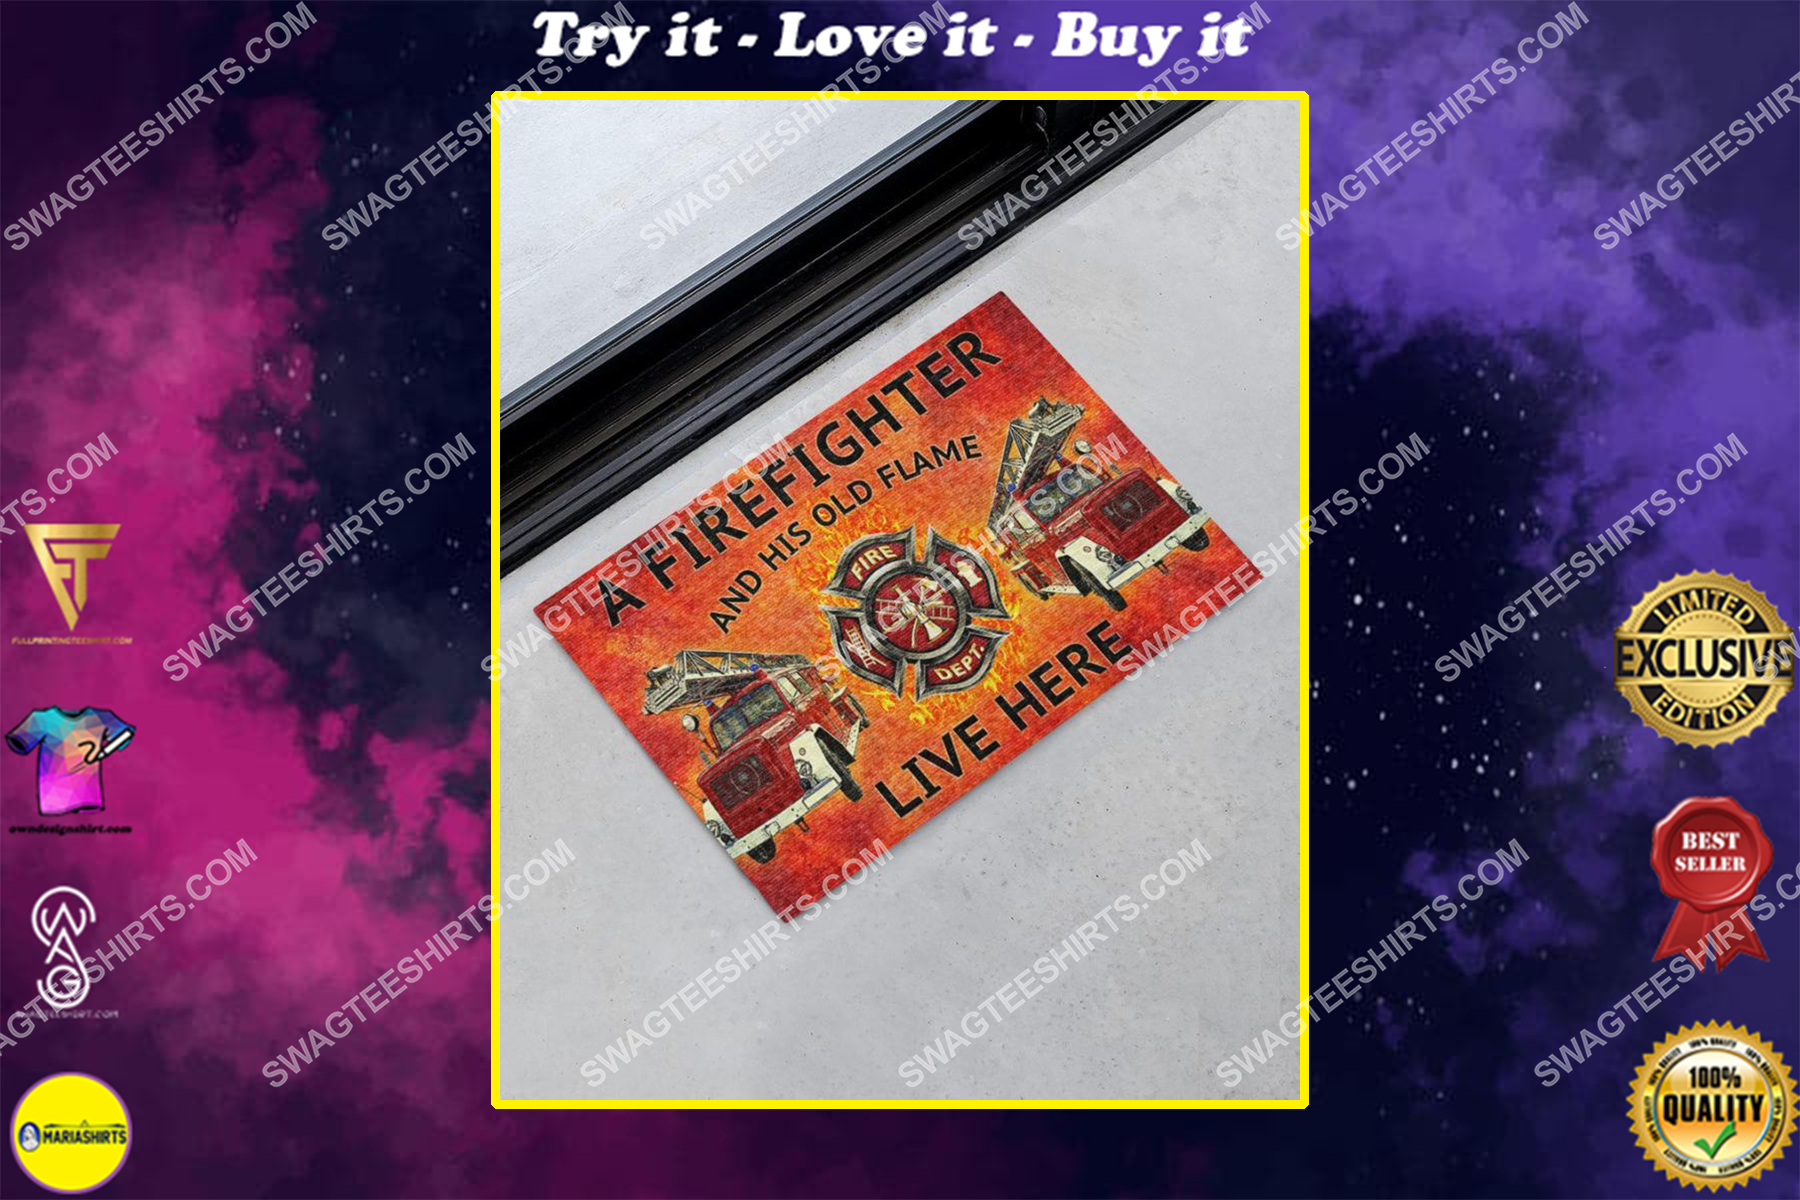 a firefighter and his old flame live here full print doormat